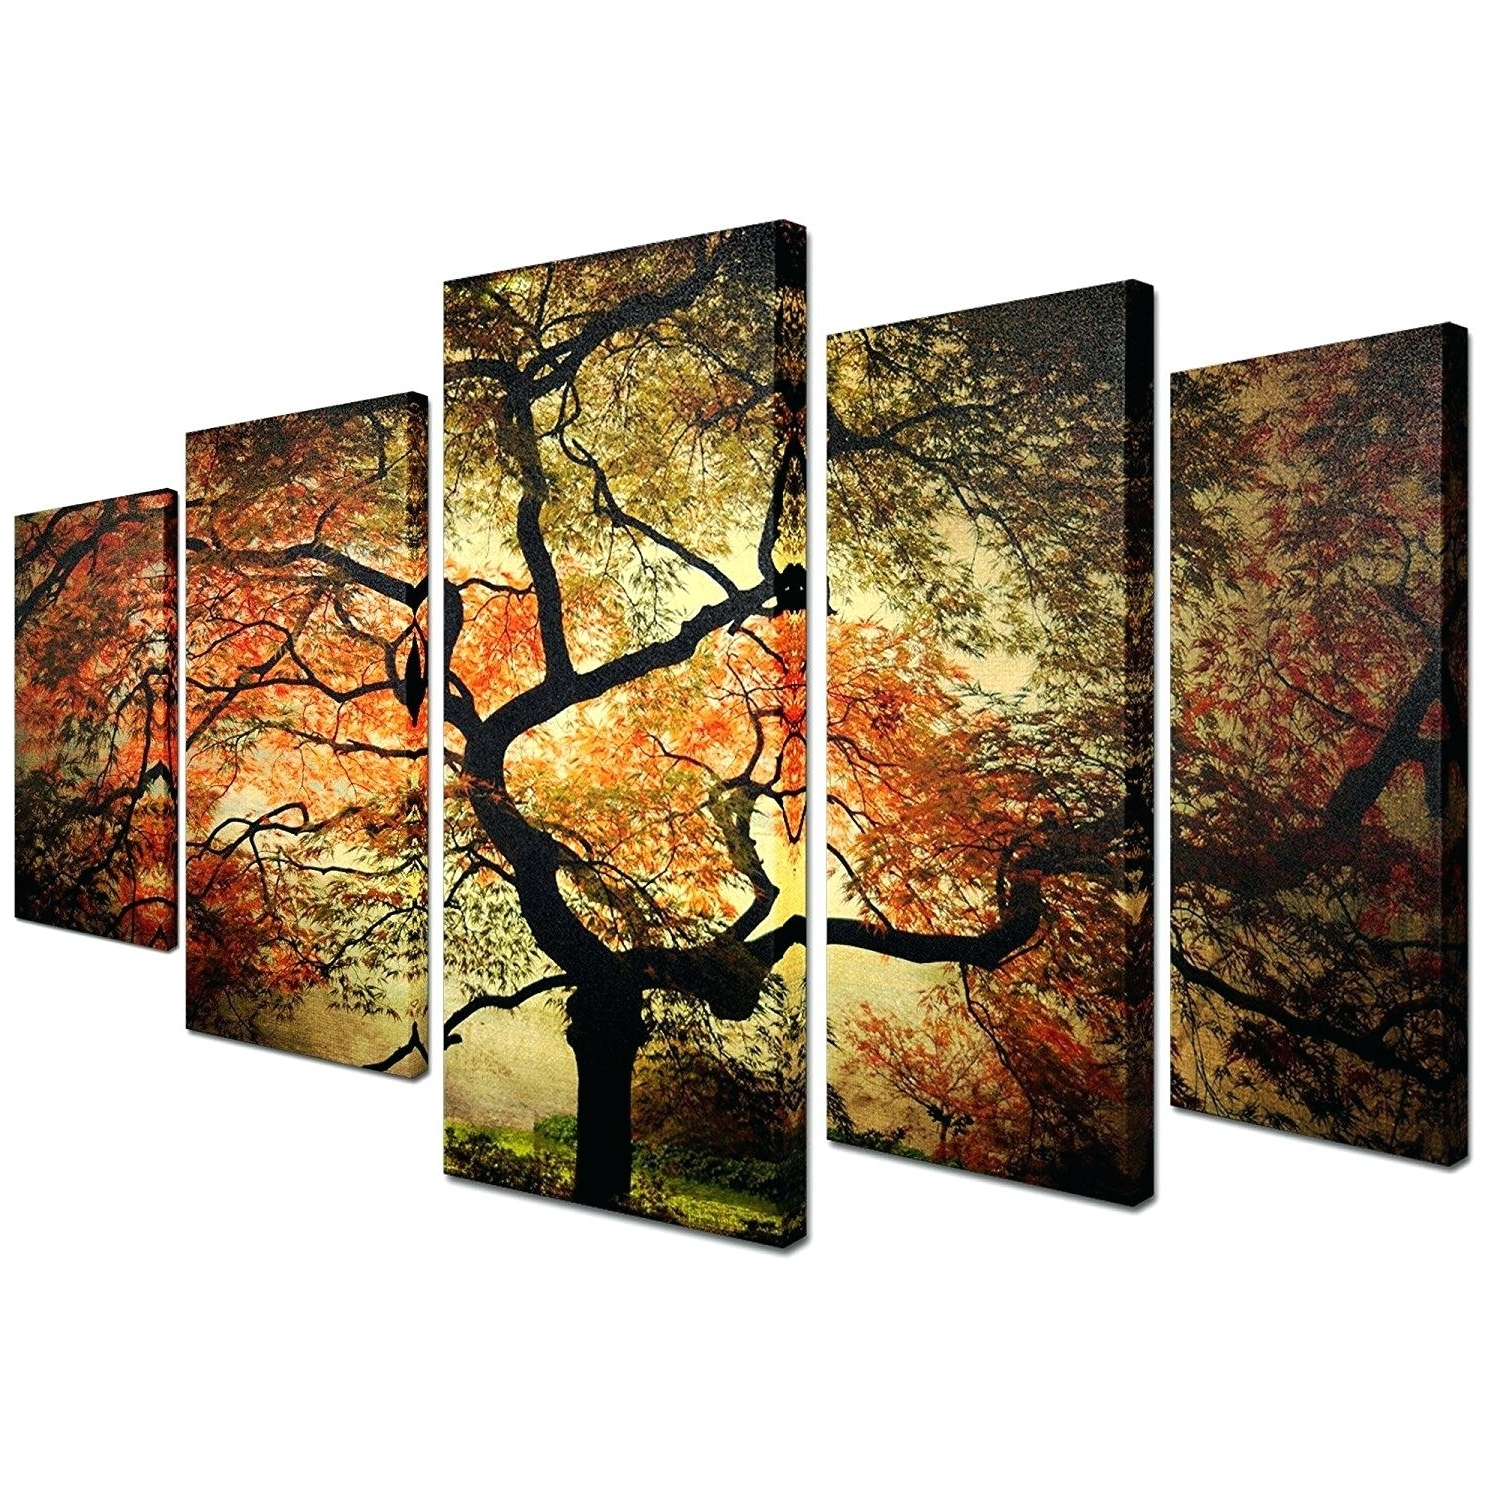 Multi Piece Canvas Wall Art – Ncgeconference Inside Most Popular Groupon Canvas Wall Art (View 9 of 15)